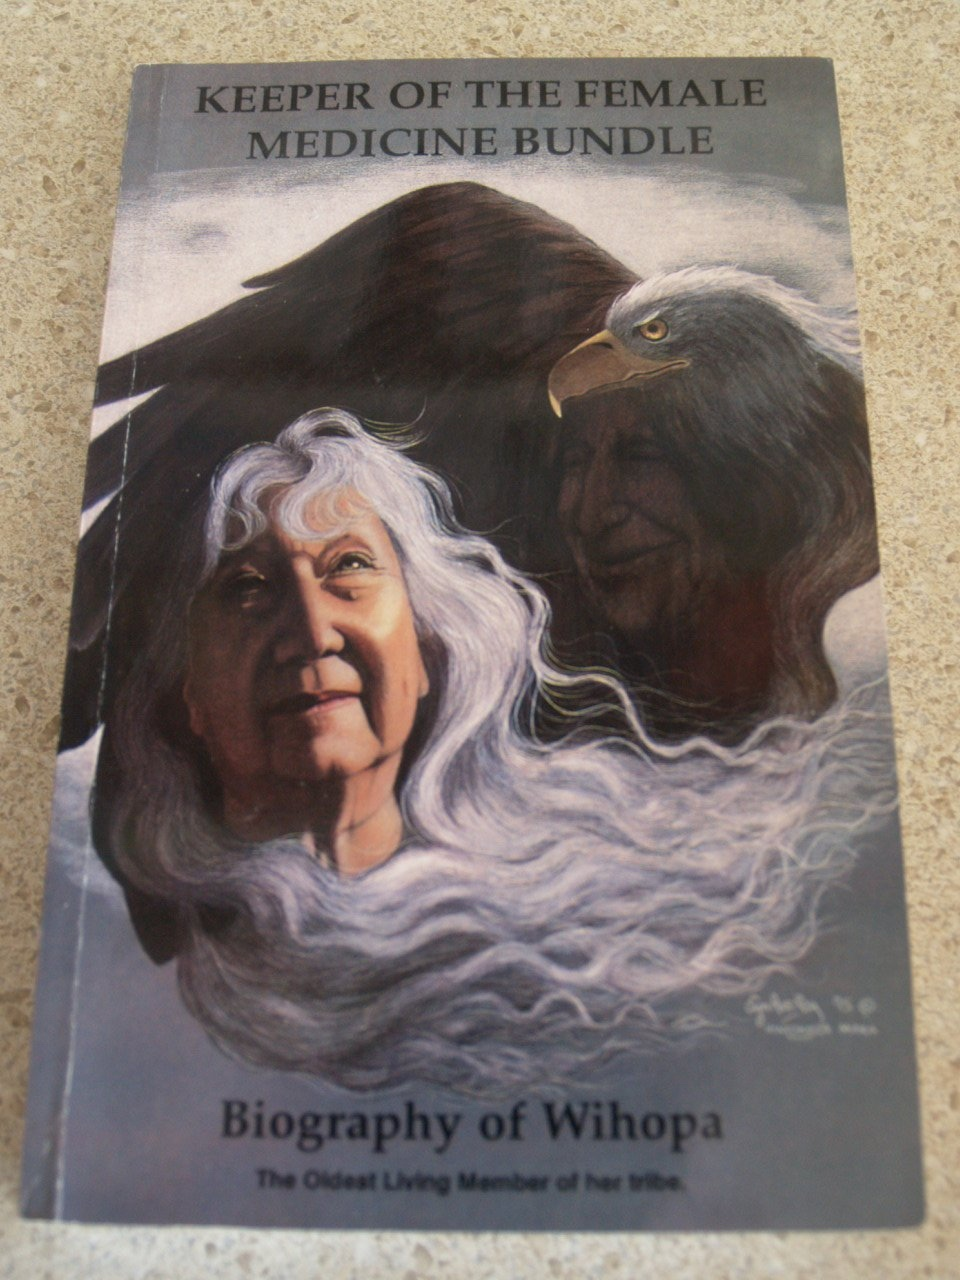 Keeper of the Female Medicine Bundle: Biography of Wihopa, Allen, Ross